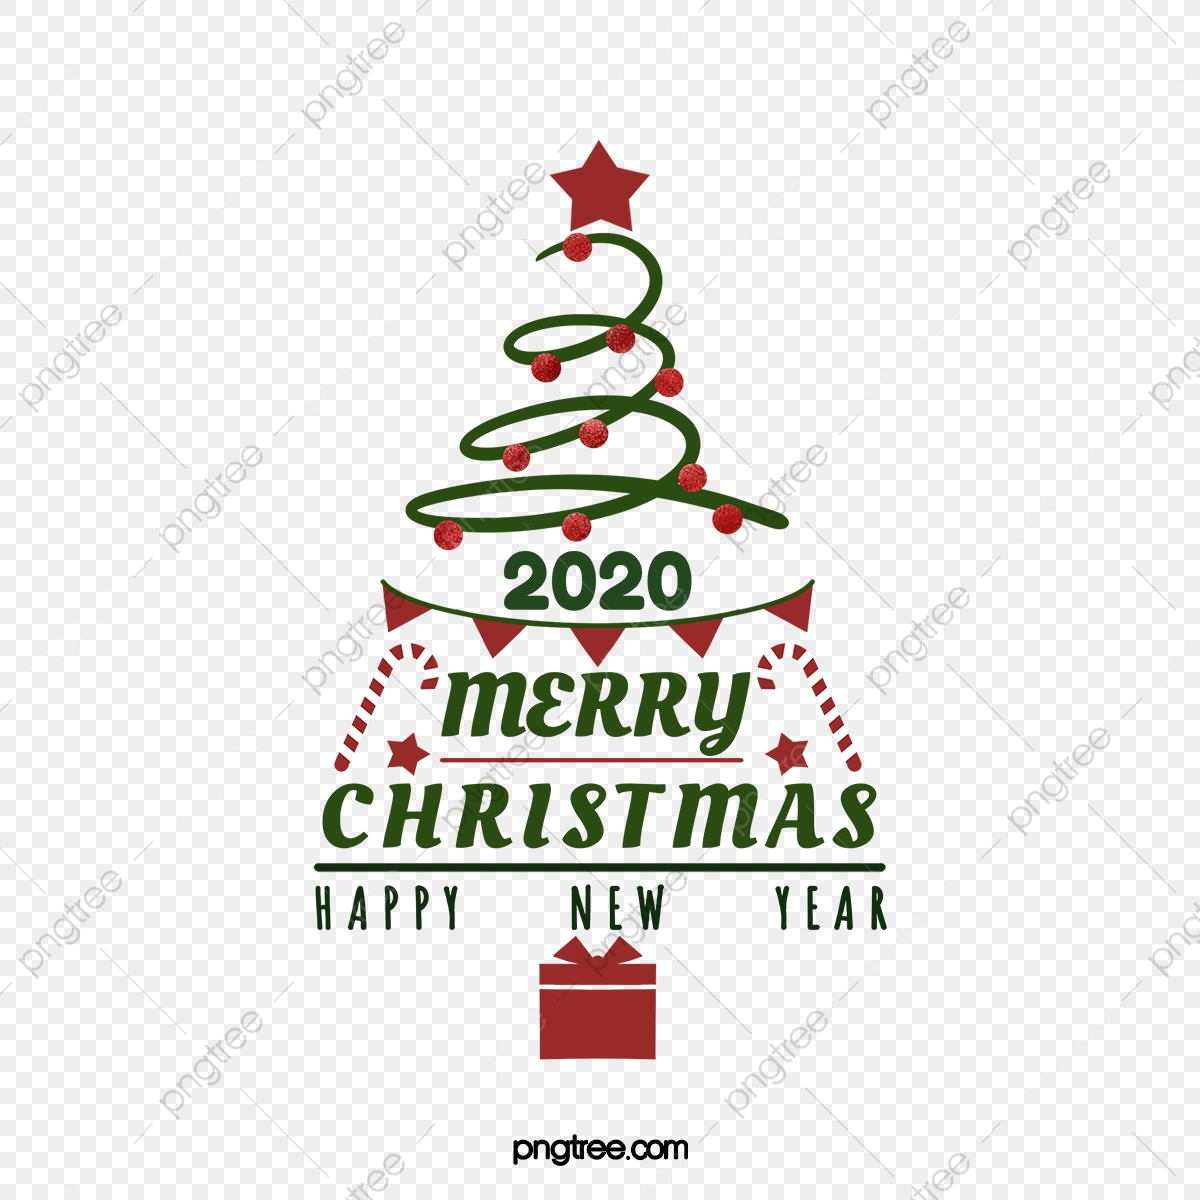 Merry Christmas 2020 Clip Art 2020 Christmas Creative Blessing, Christmas, Merry Christmas, Word